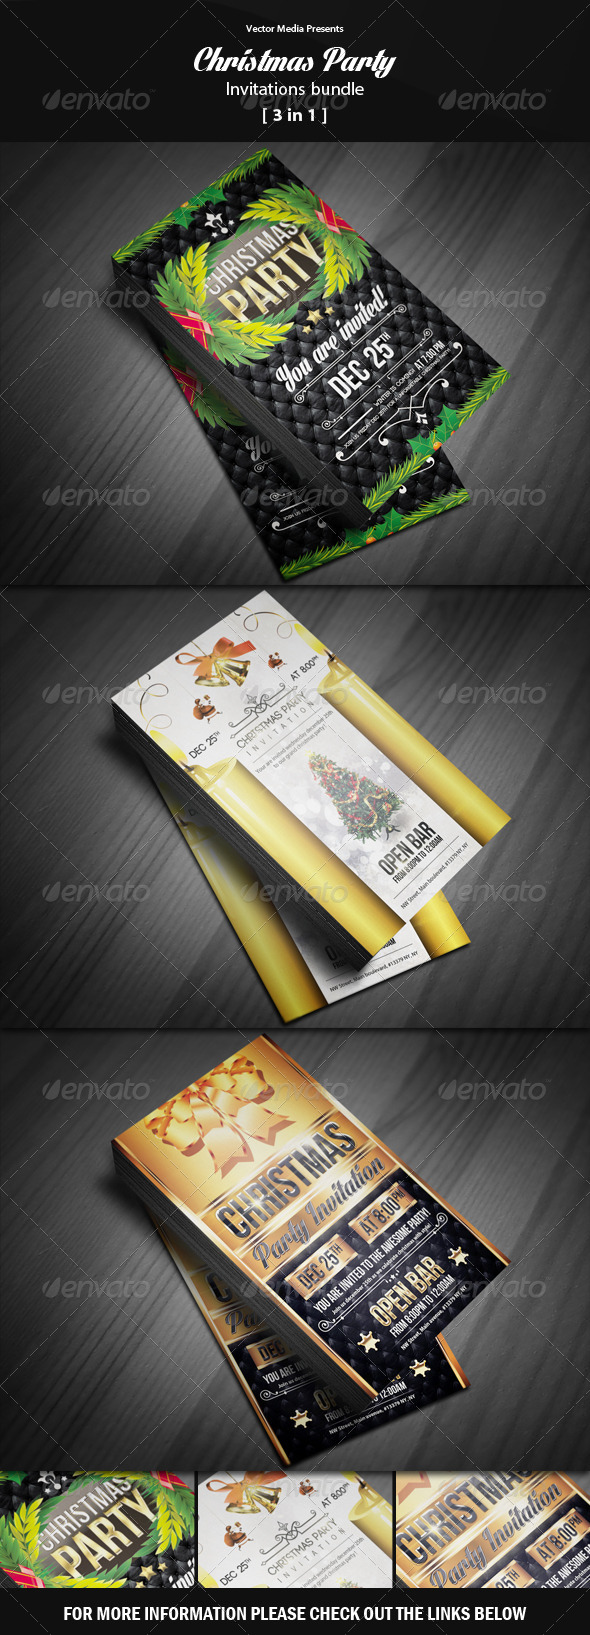 Christmas Party - Invitations Bundle - Invitations Cards & Invites